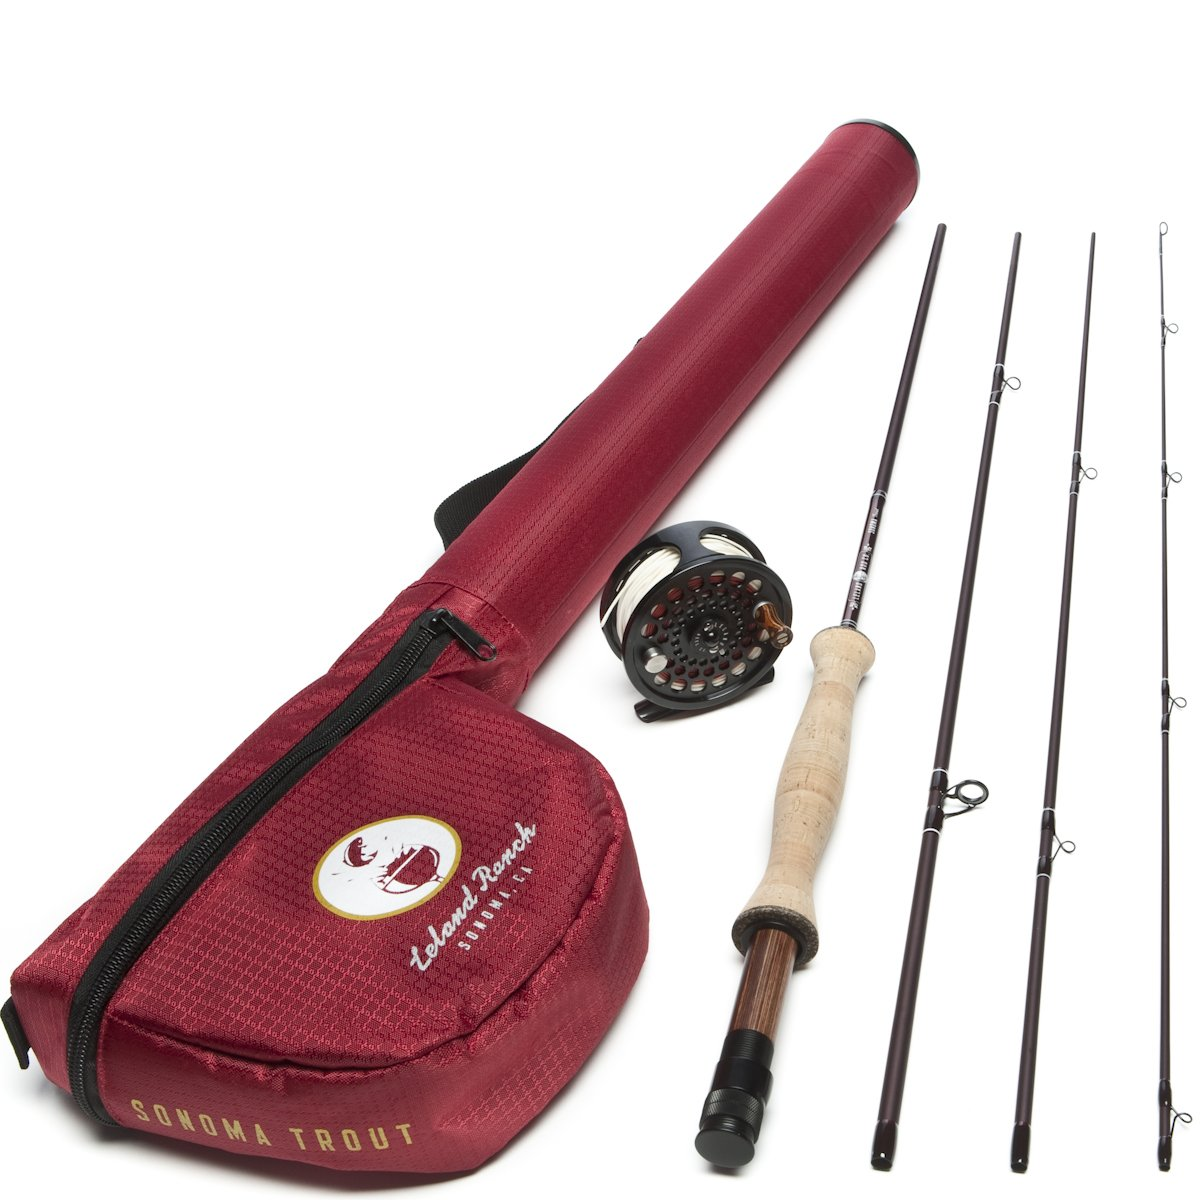 Leland Rod Co. Sonoma Starter Trout Fly Fishing Combo (Includes: Rod, Reel, Line, and Leader) by Leland Rod Company